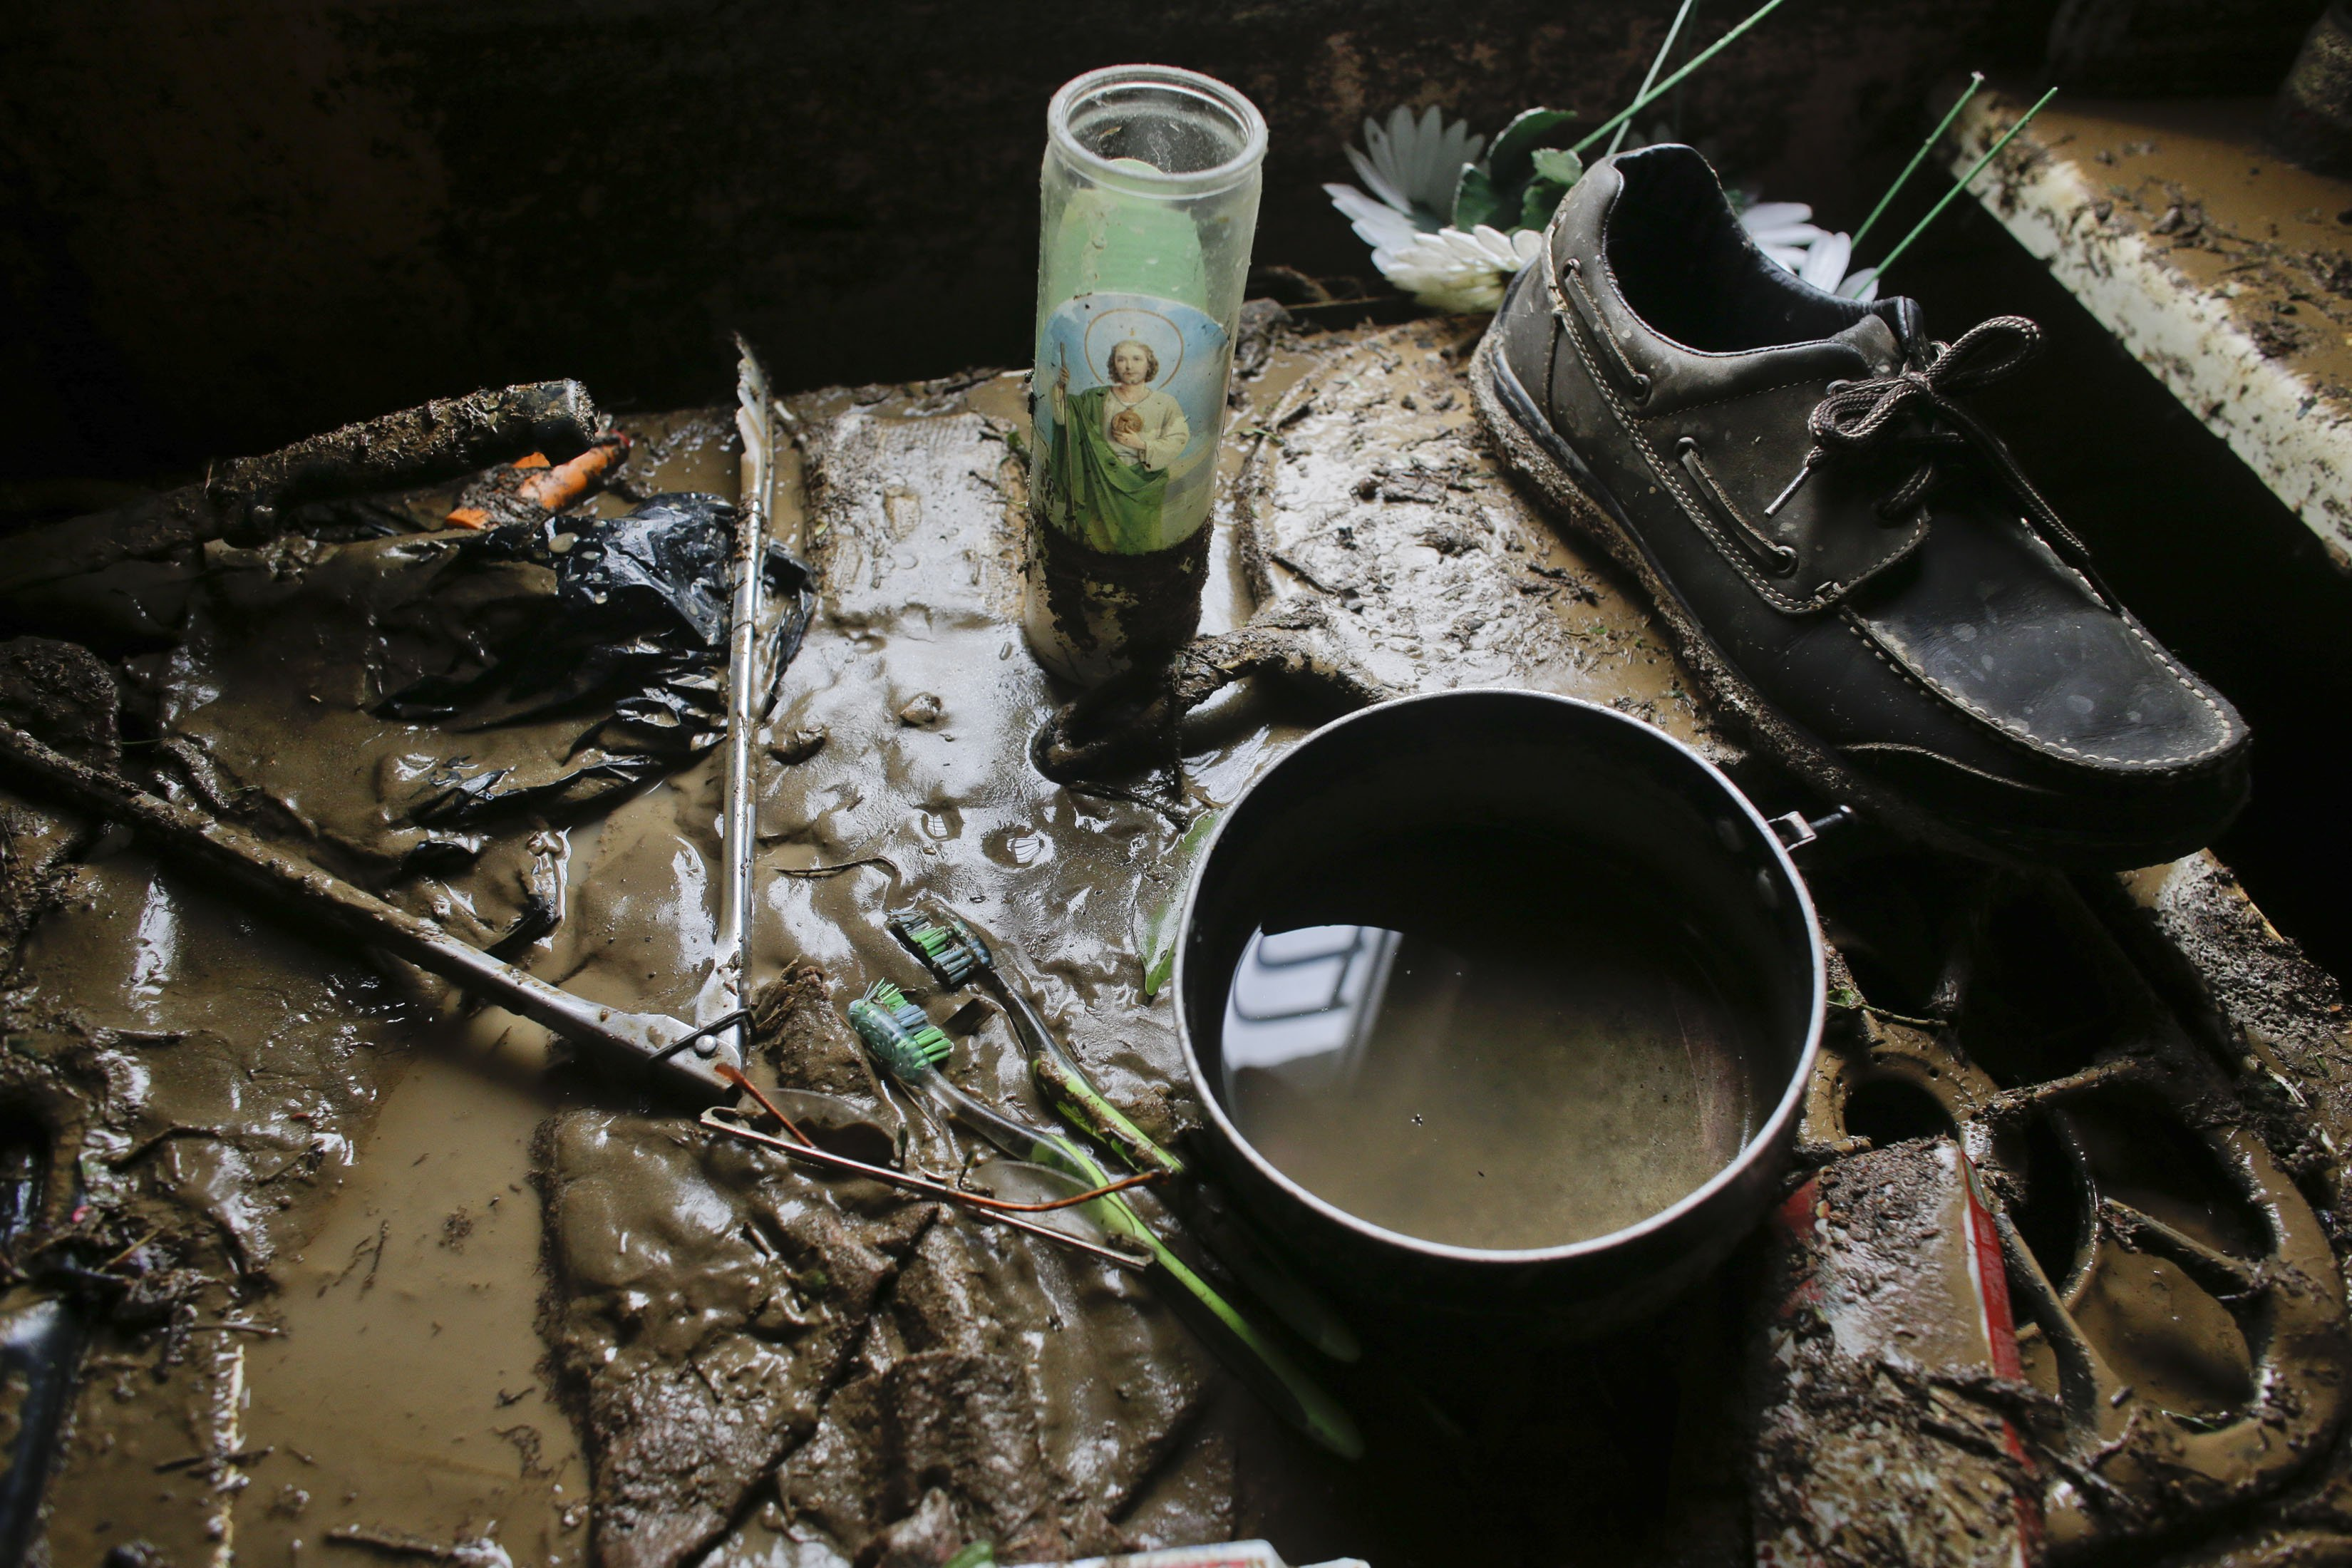 Part of the belongings of Enrique Cota Ceceña sit covered in mud inside his house which was severely flooded by Hurricane Odile in Los Cabos, Mexico, Sept. 15, 2014.